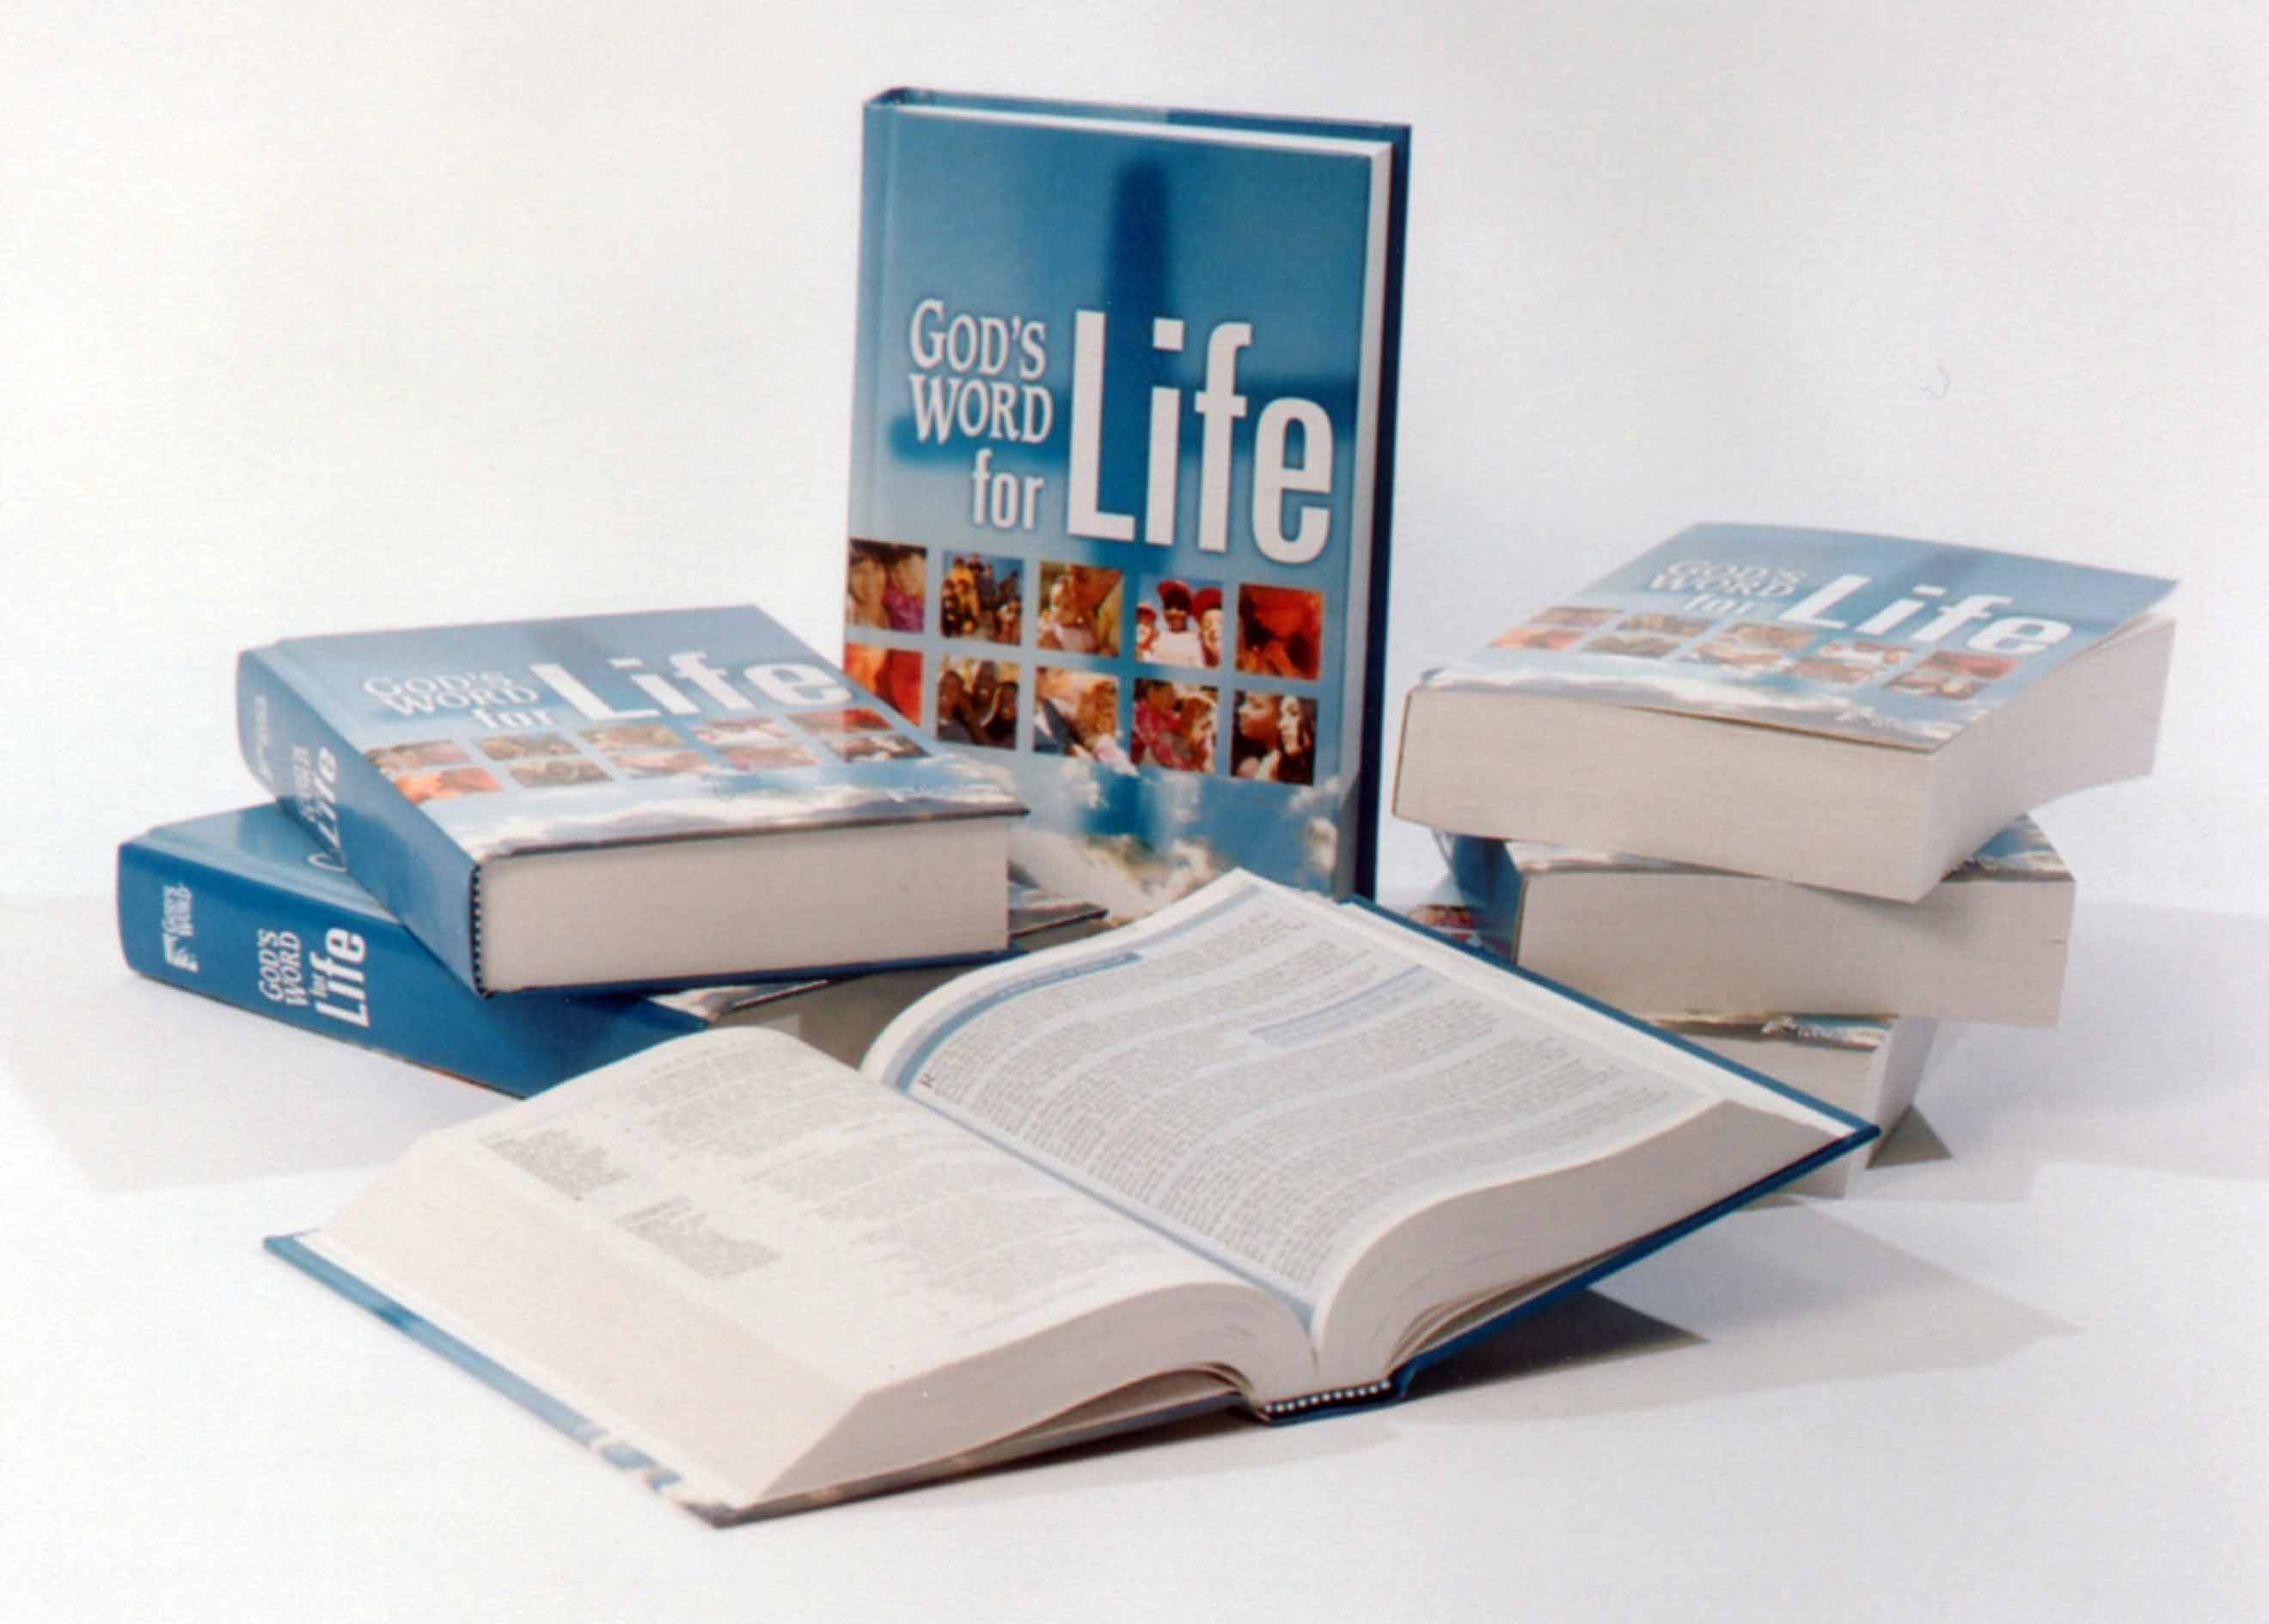 GOD'S WORD for Life layout